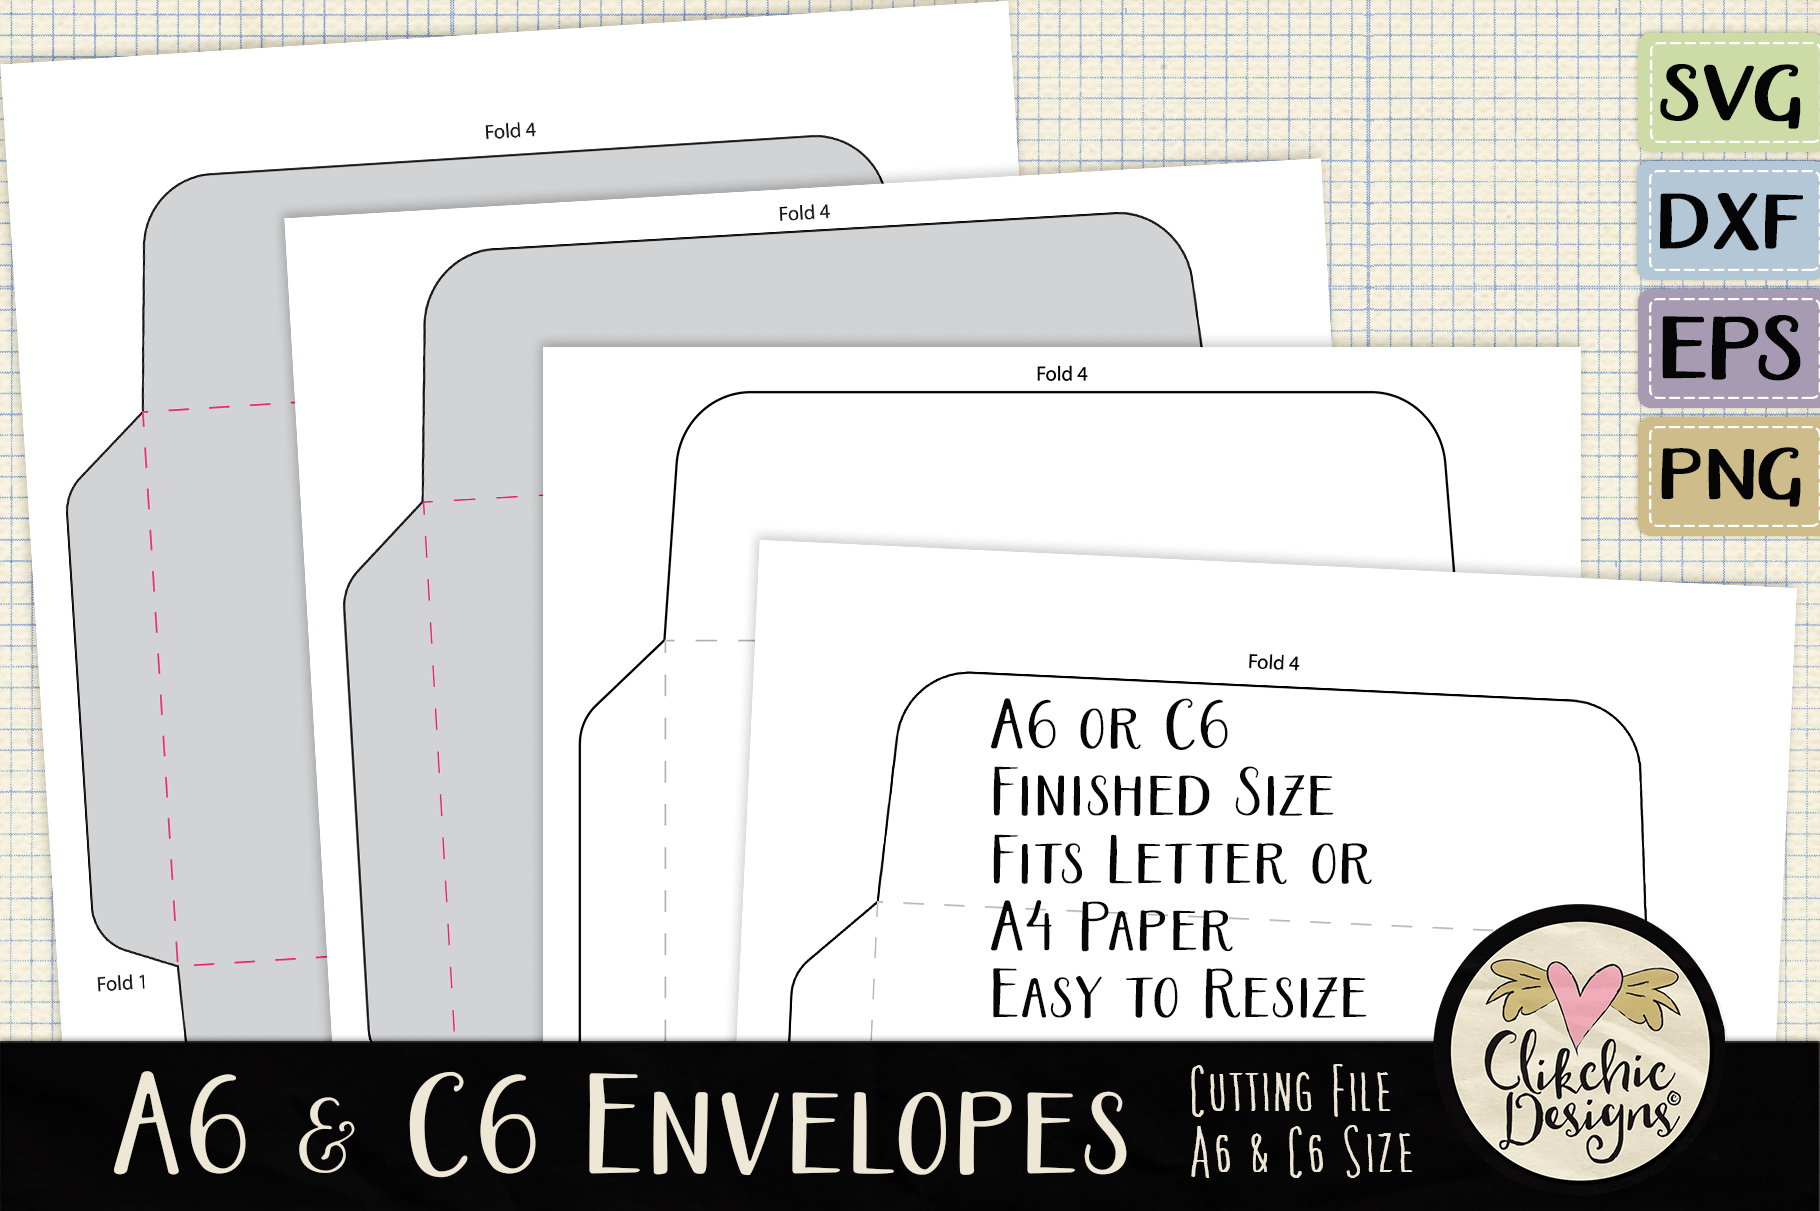 A6 C6 Svg Envelope Cutting File Template By Clikchic Designs